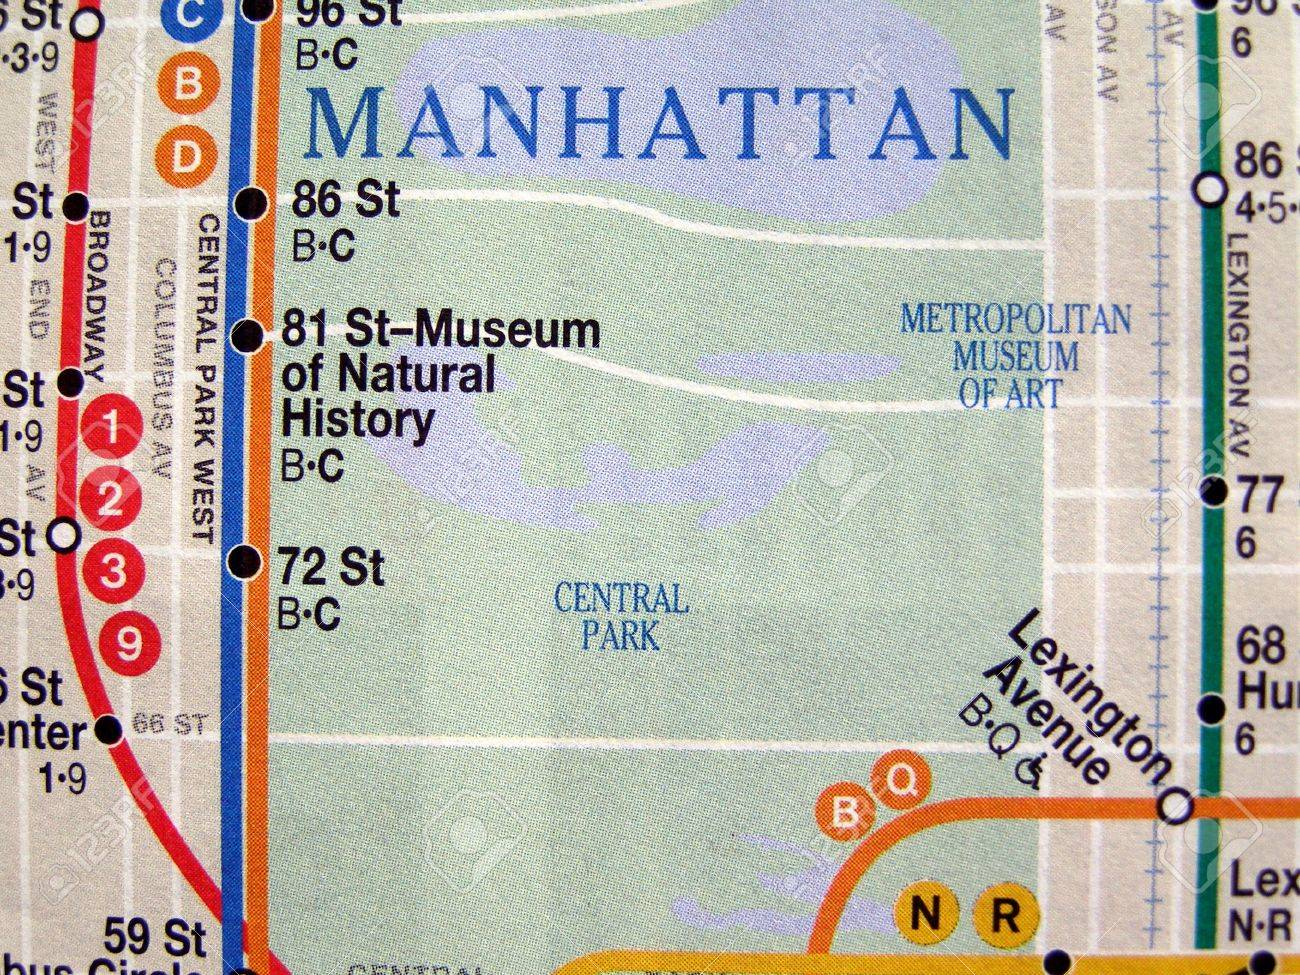 Subway Map Of The New York Underground Metro Tube Network Stock ...